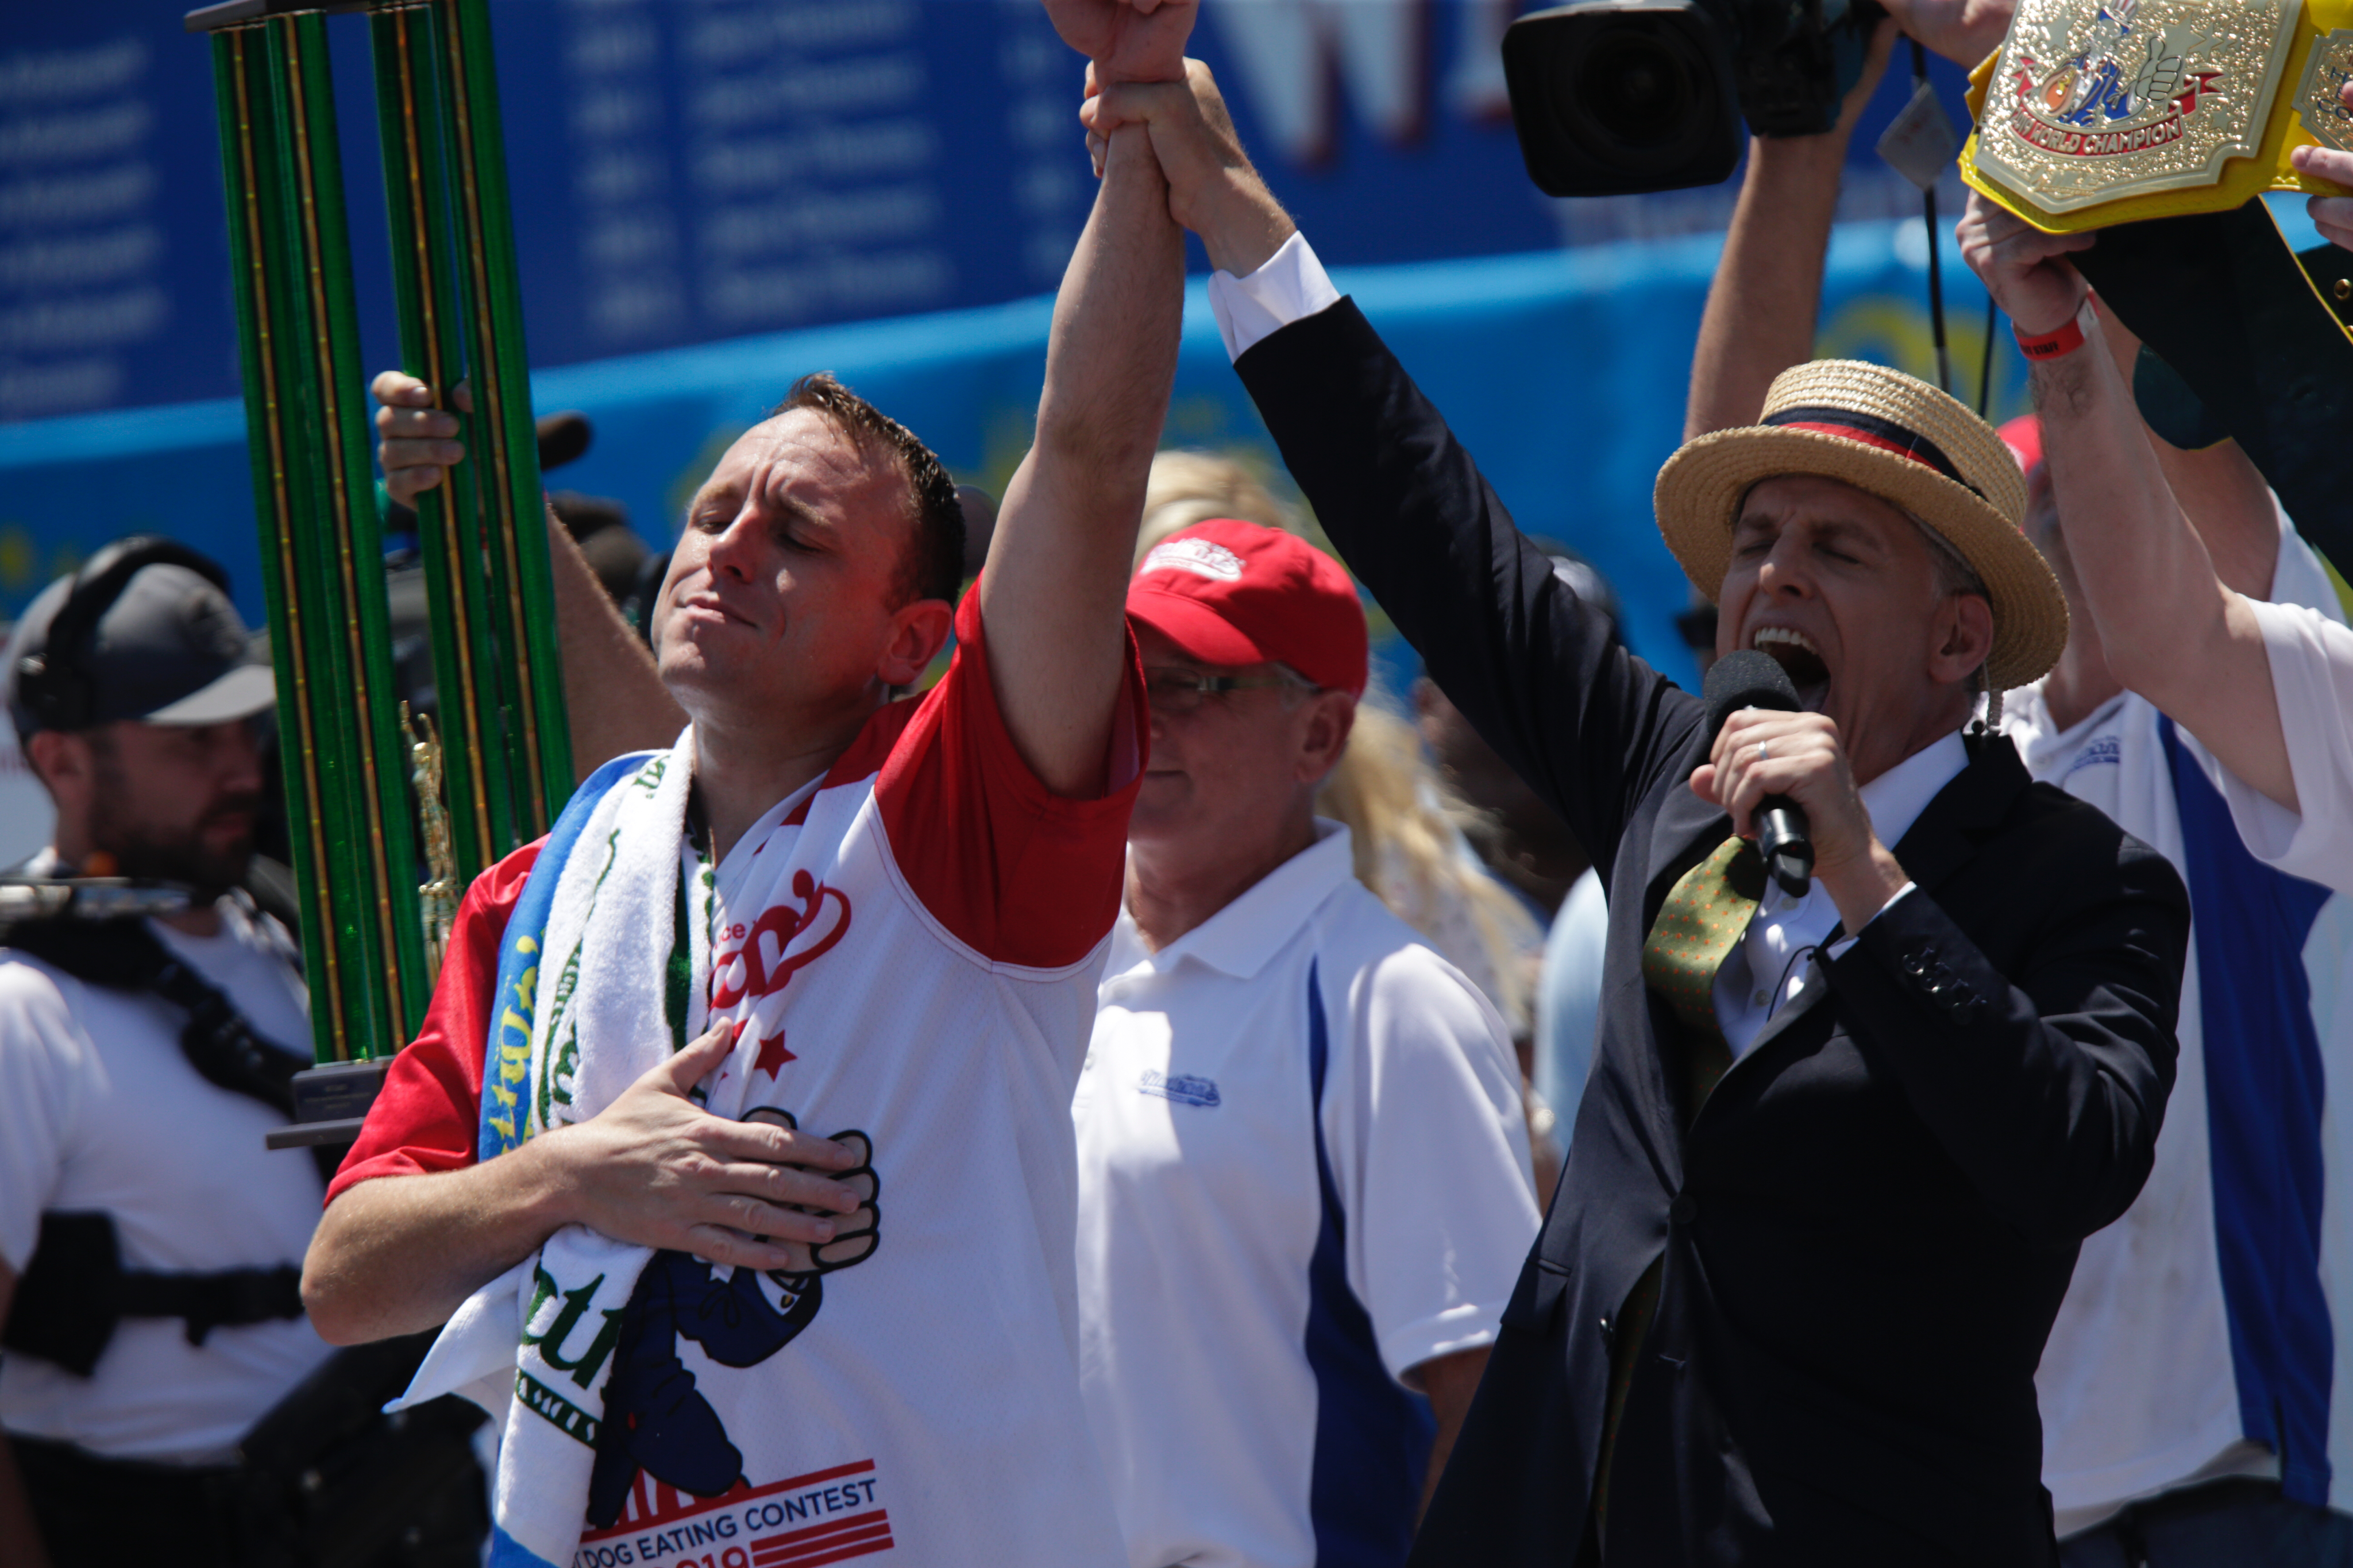 Joey Chestnut reacts after he wins the annual Nathan's hot dog eating contest on July 4, 2019 in New York City. Nathan's held its first hot dog eating contest in Coney Island on July 4, 1916.